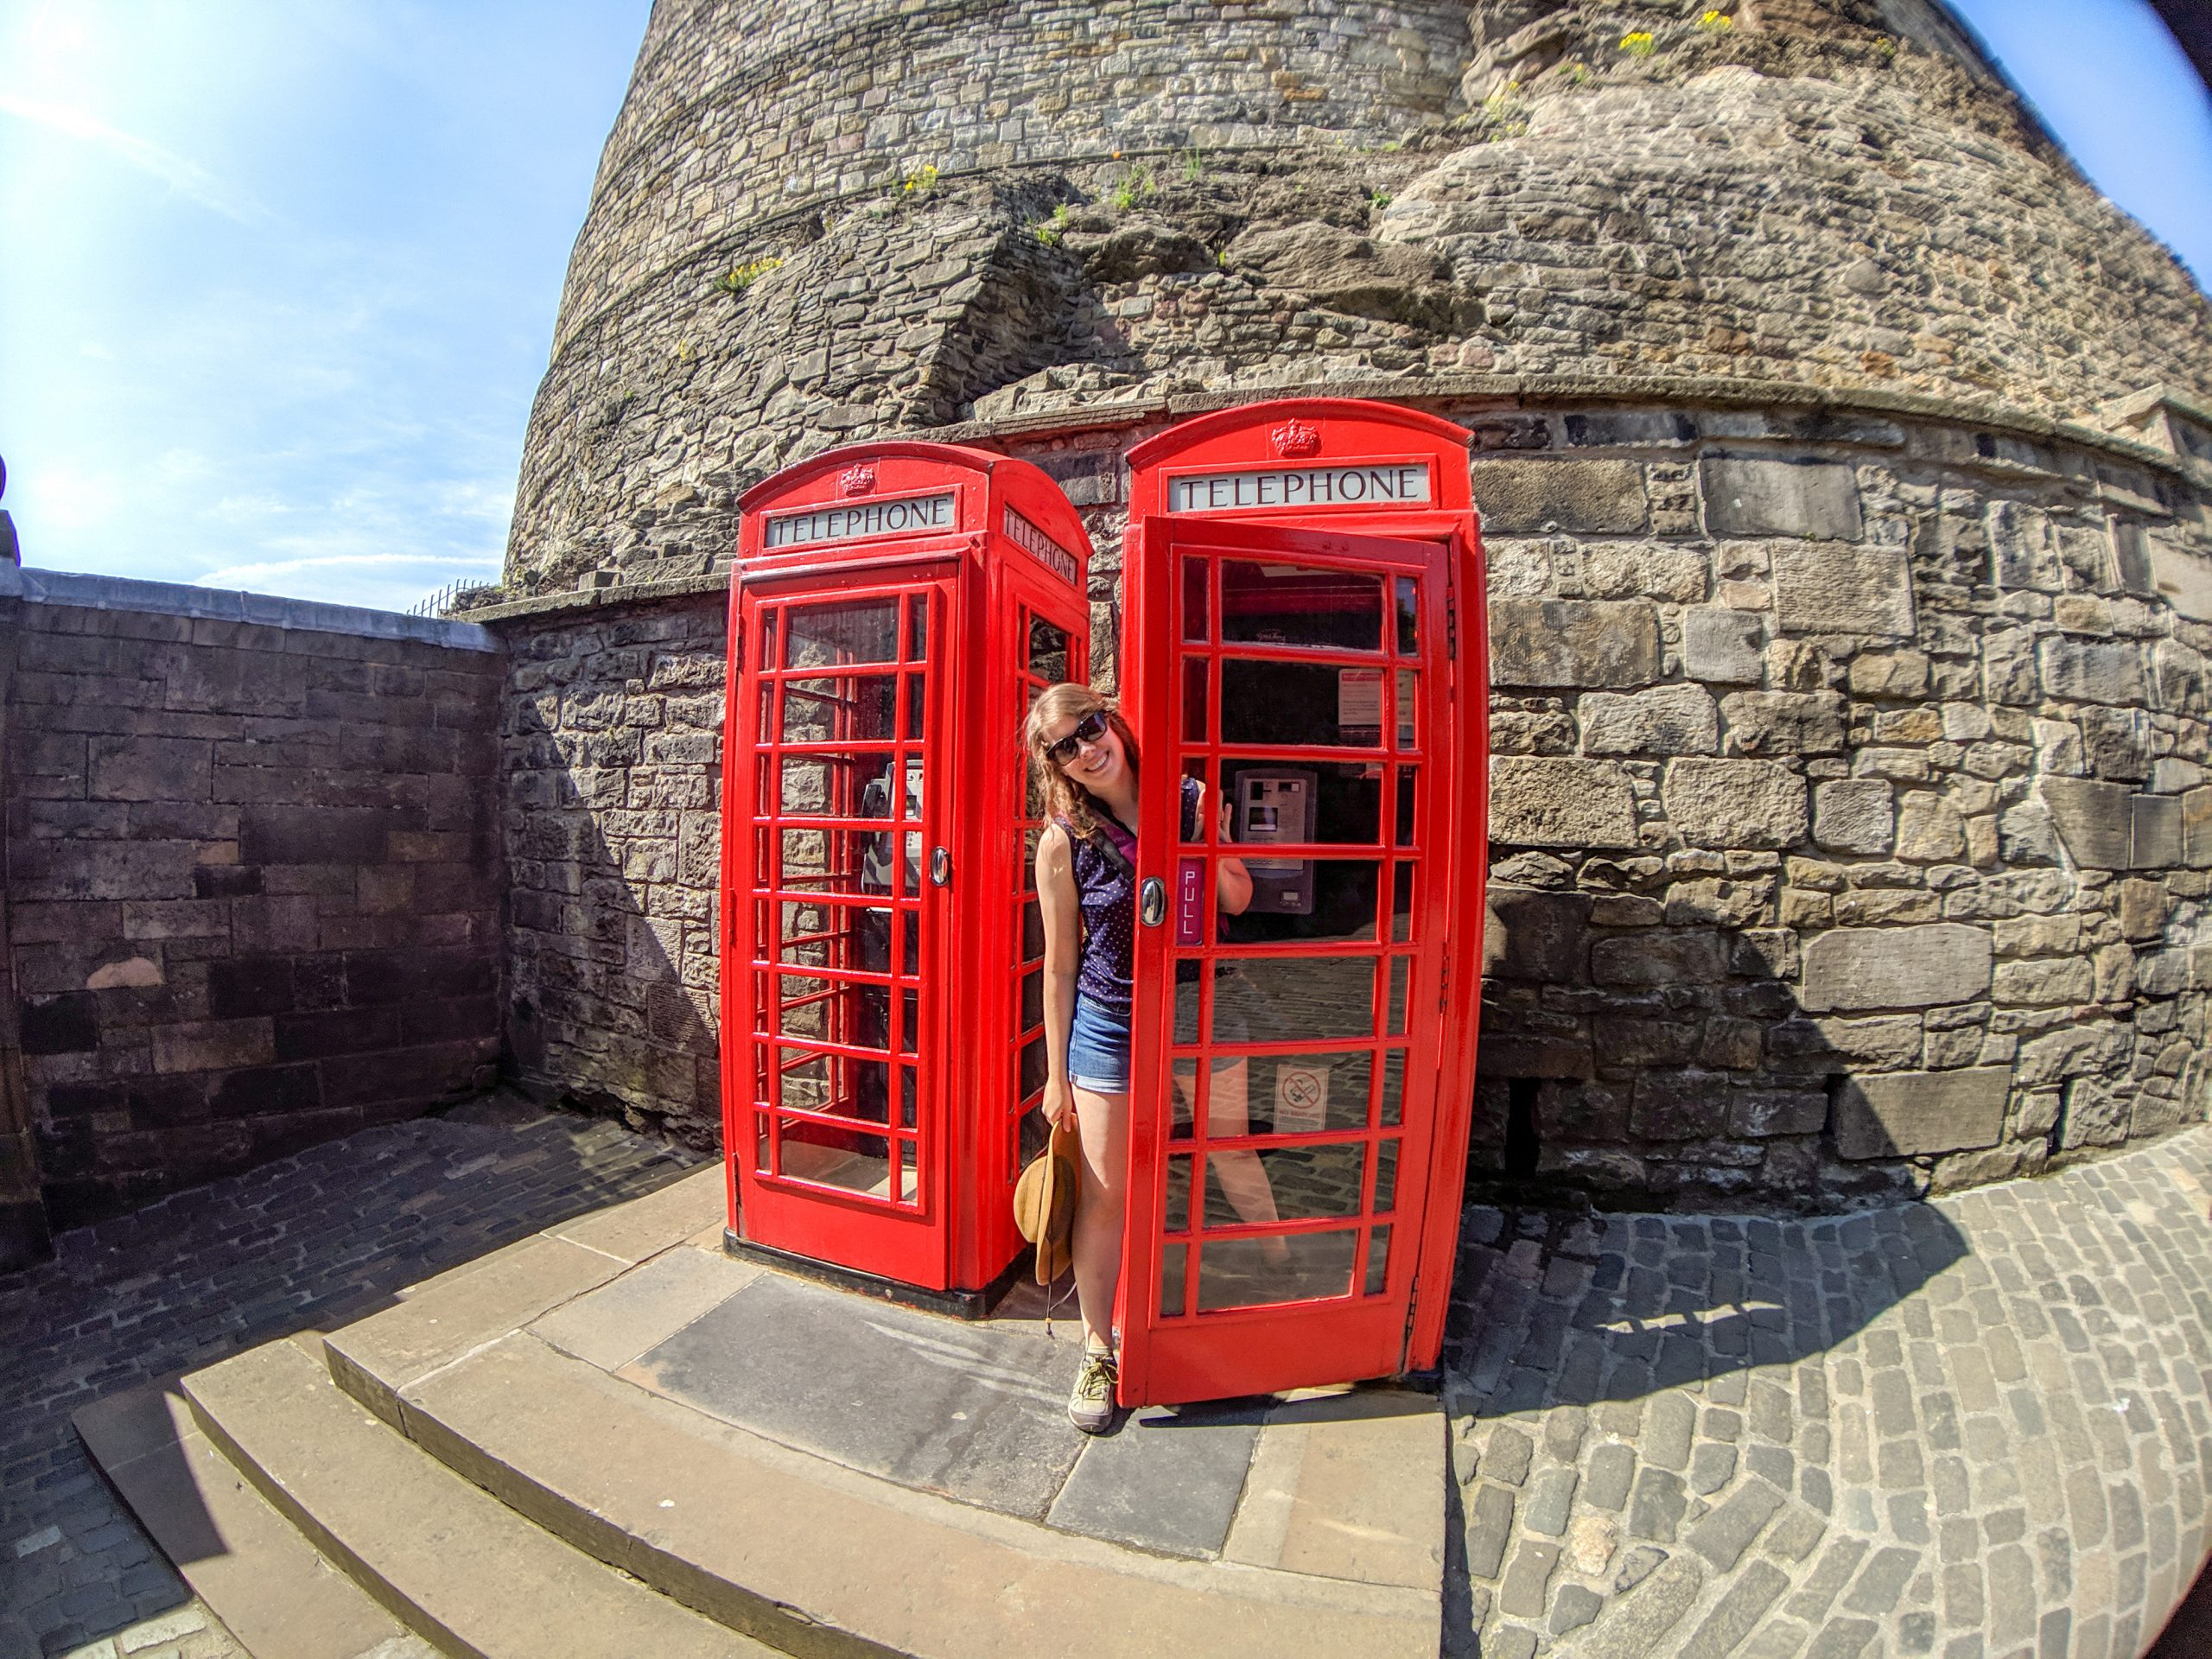 Woman in iconic UK red phone booth